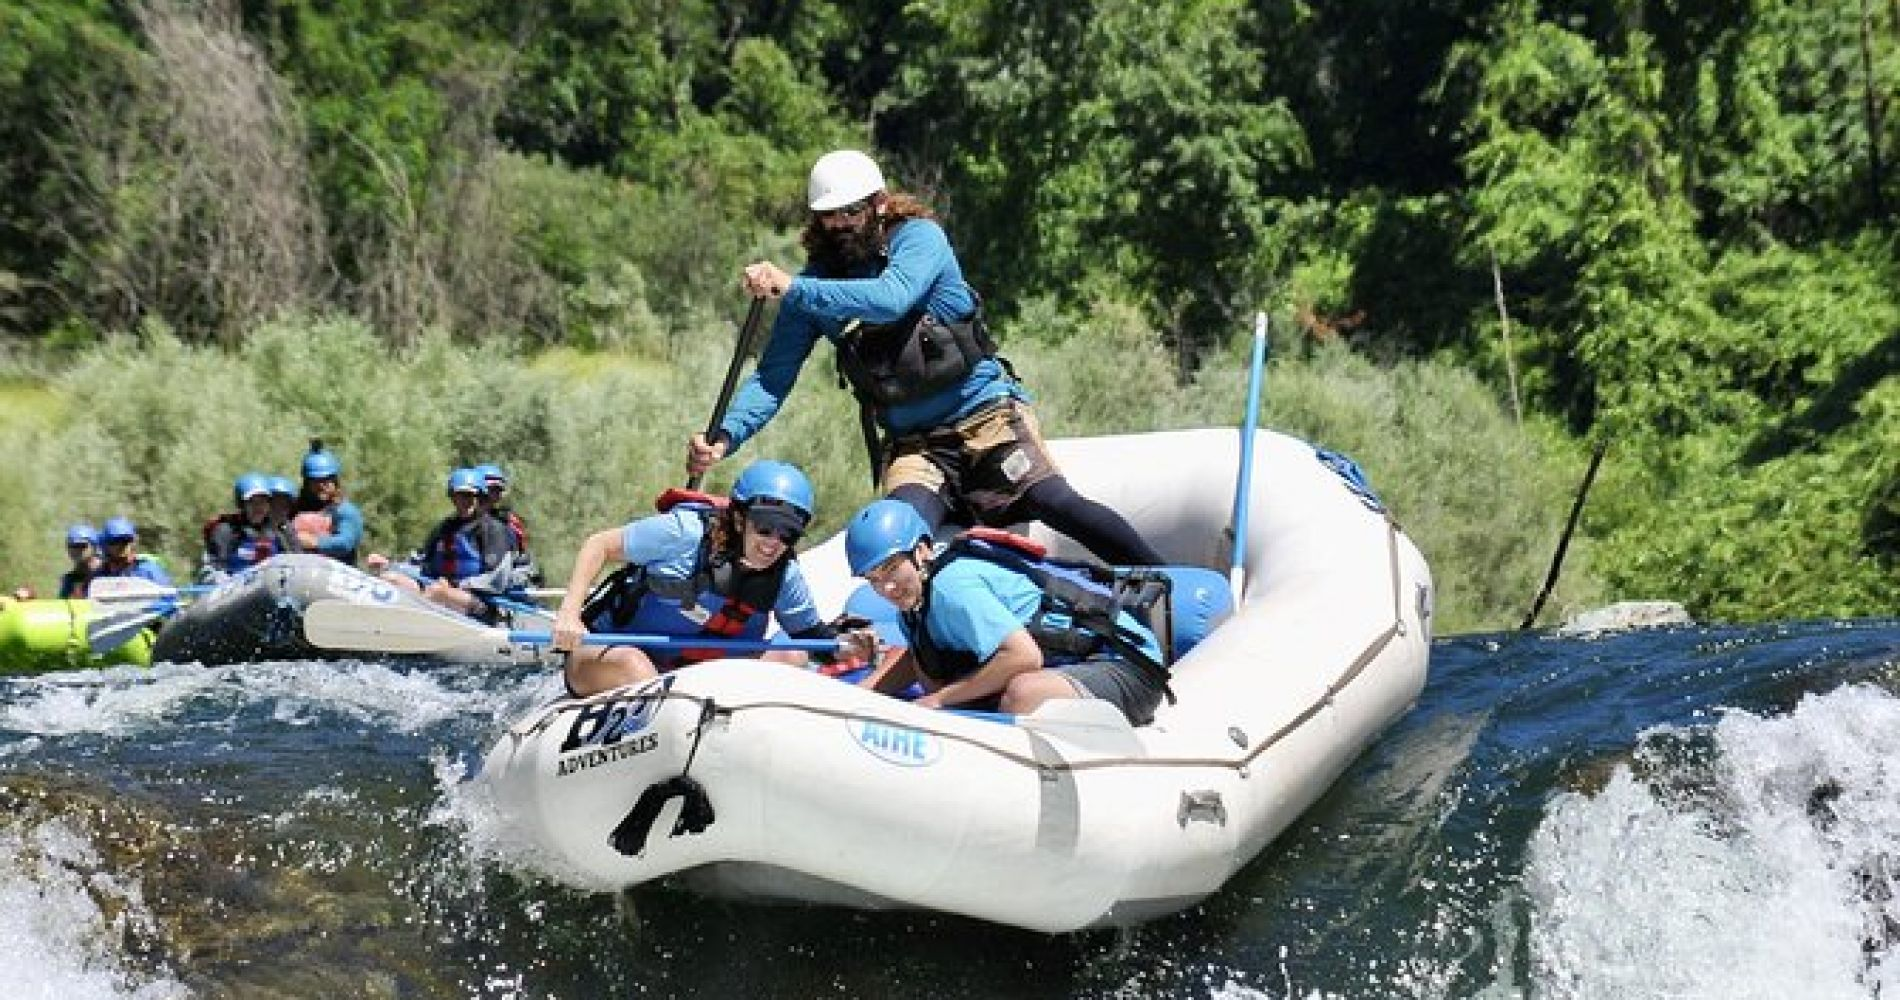 Full-Day Whitewater Rafting Trip on Middle Fork from Auburn (Class 3-4)